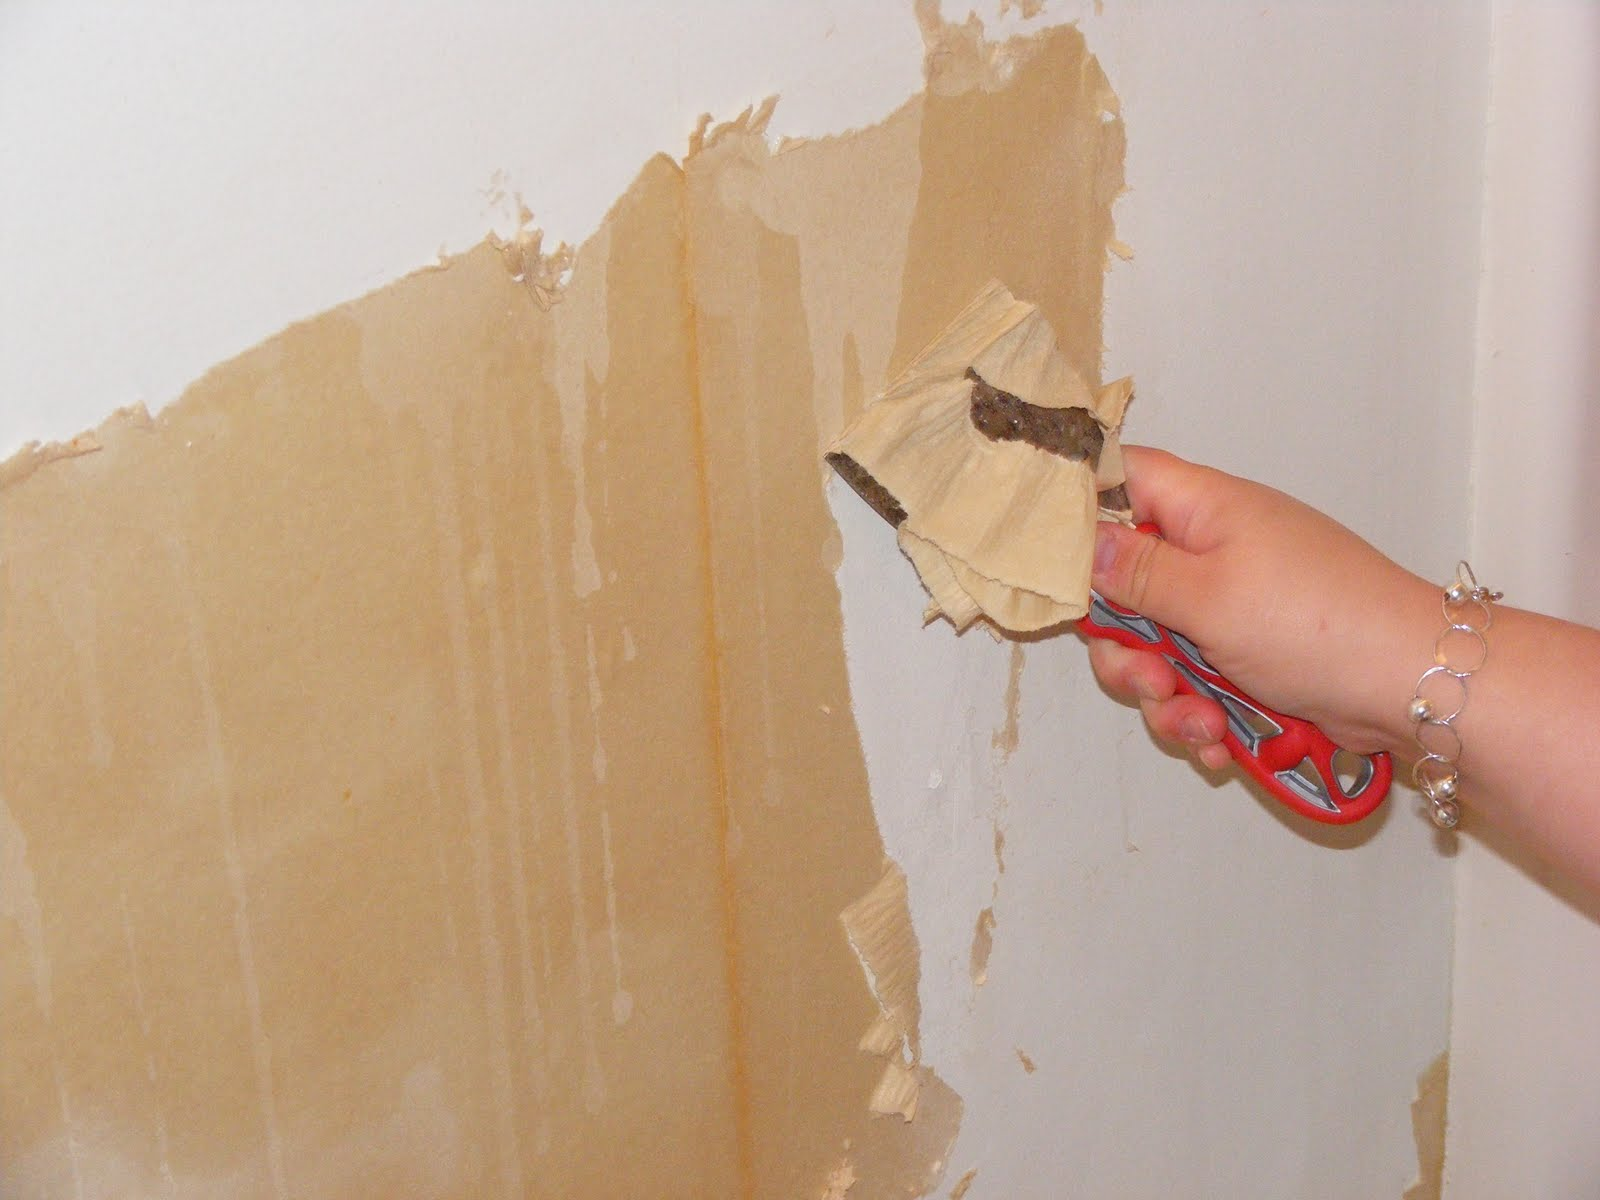 easiest way to remove wallpaper backing